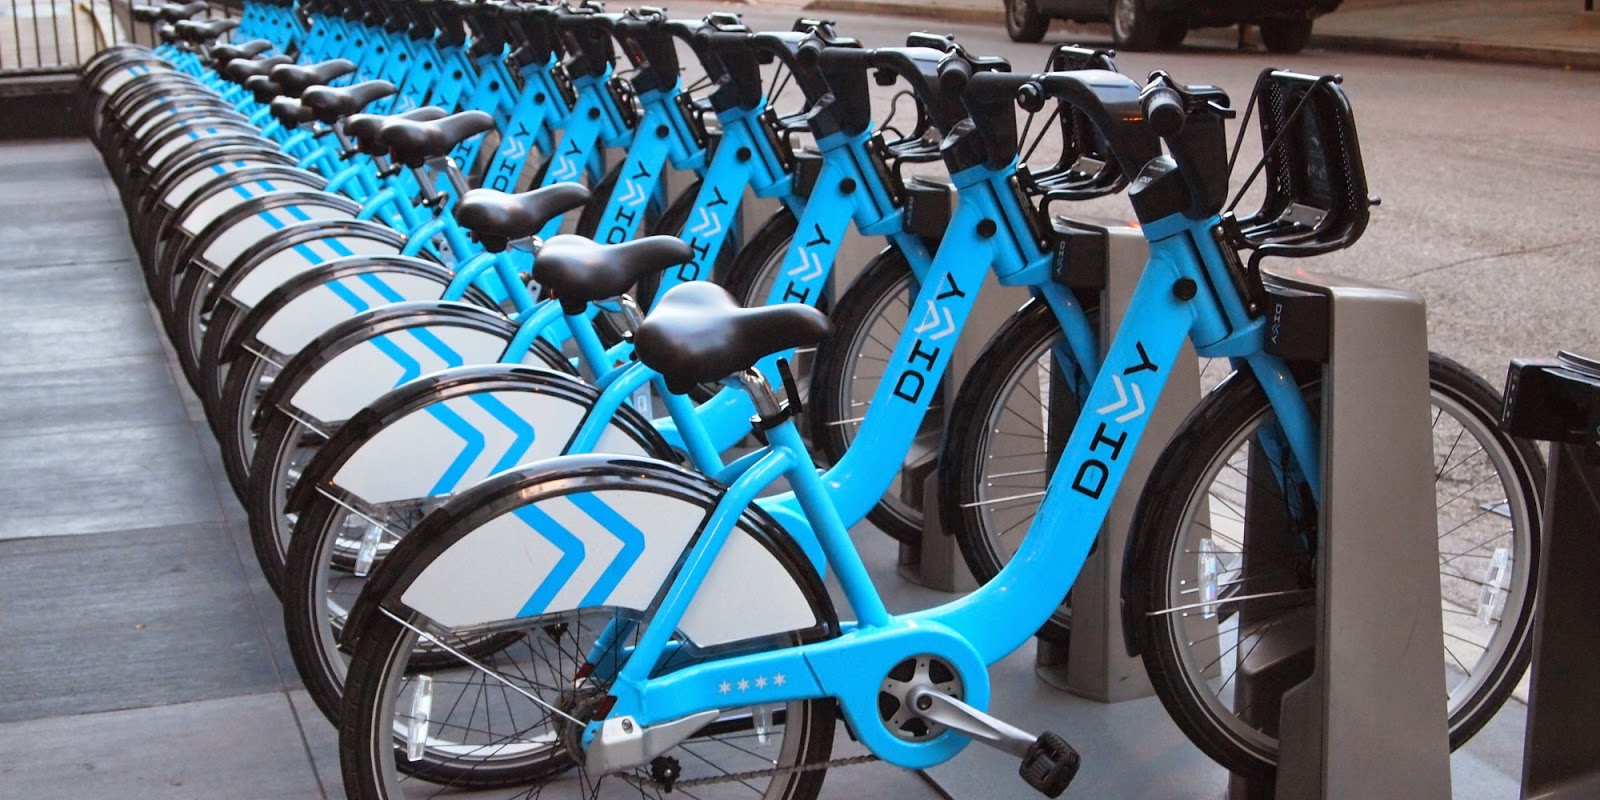 Blue Rental Bikes In Chicago blacks riding bicycles